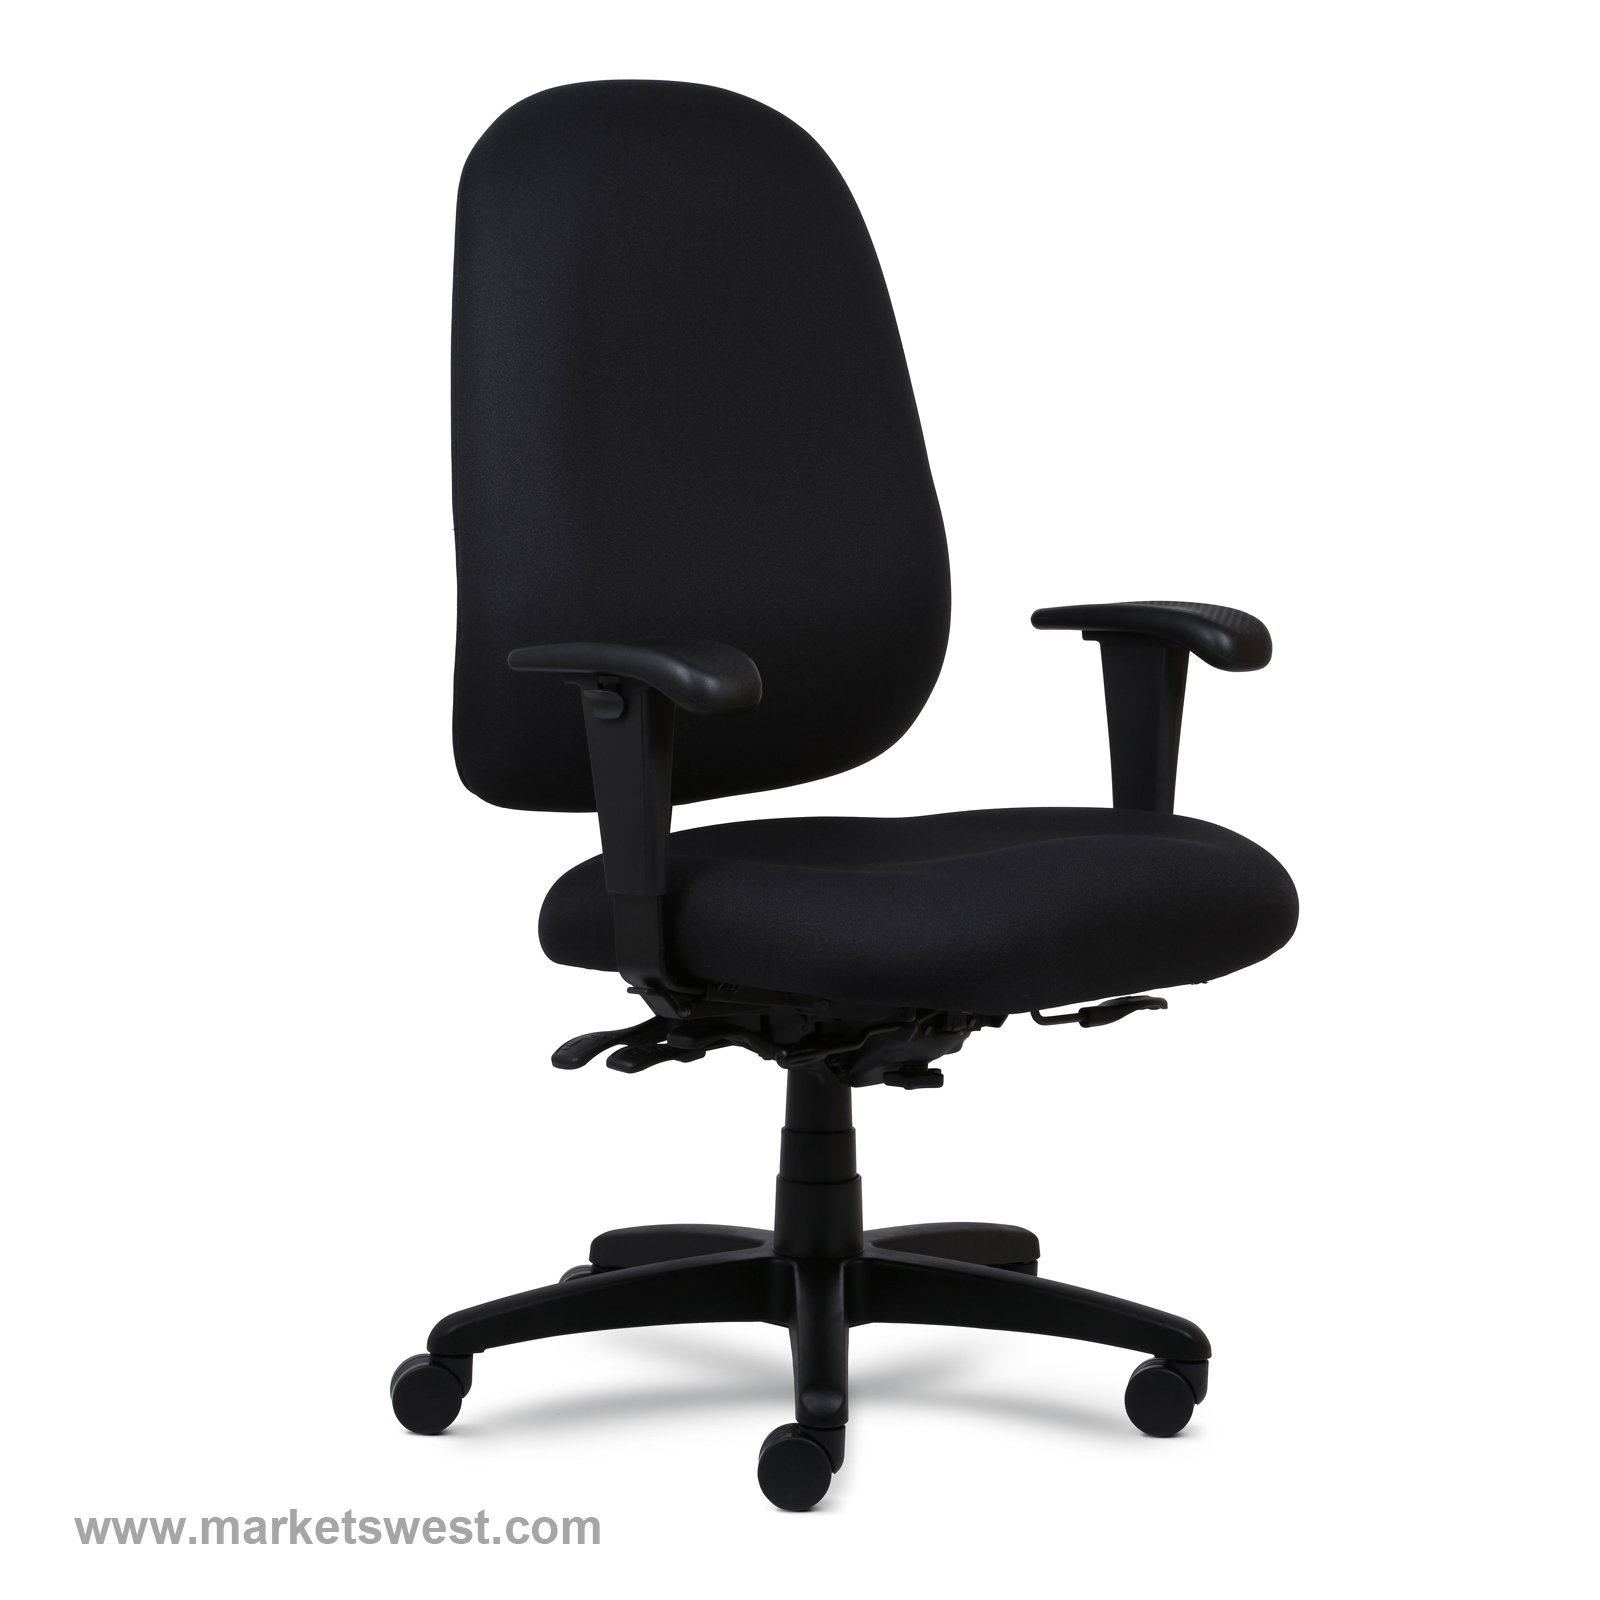 Logic Plus Heavy Duty High Back Desk Task Chair with 500lb Rating